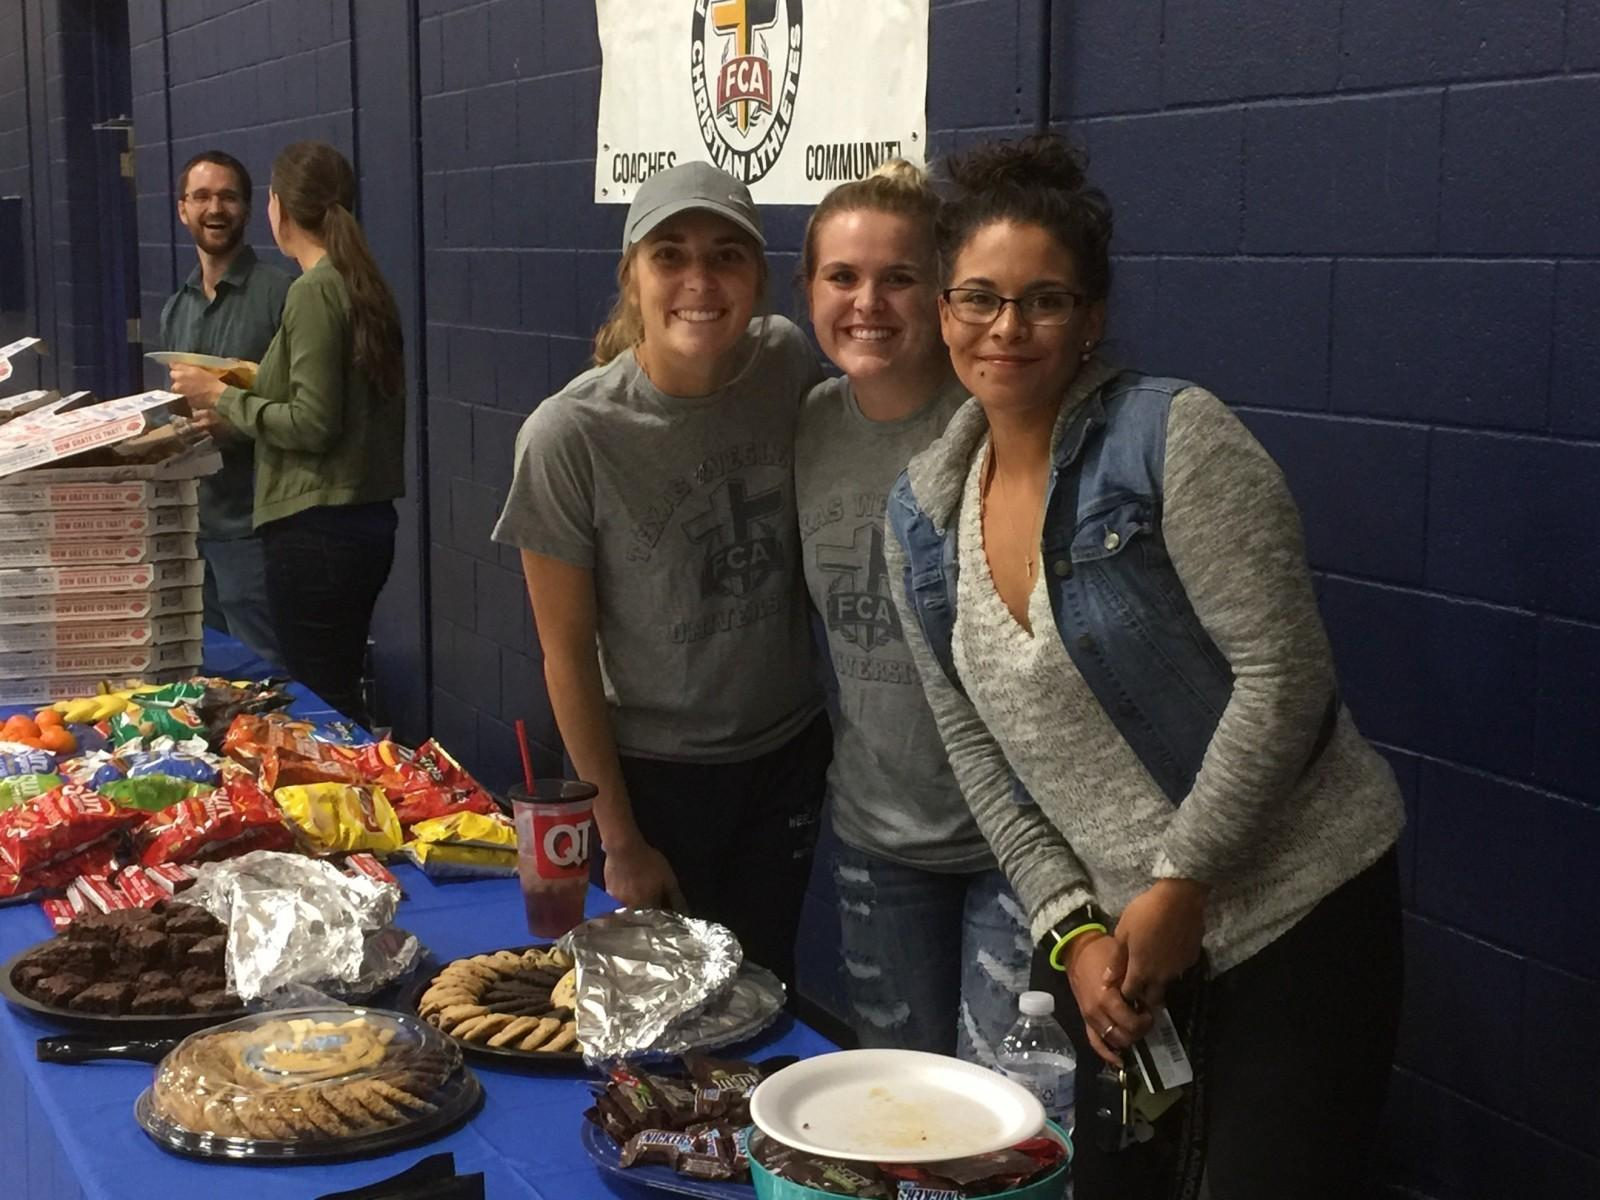 FCA offers students a place for community